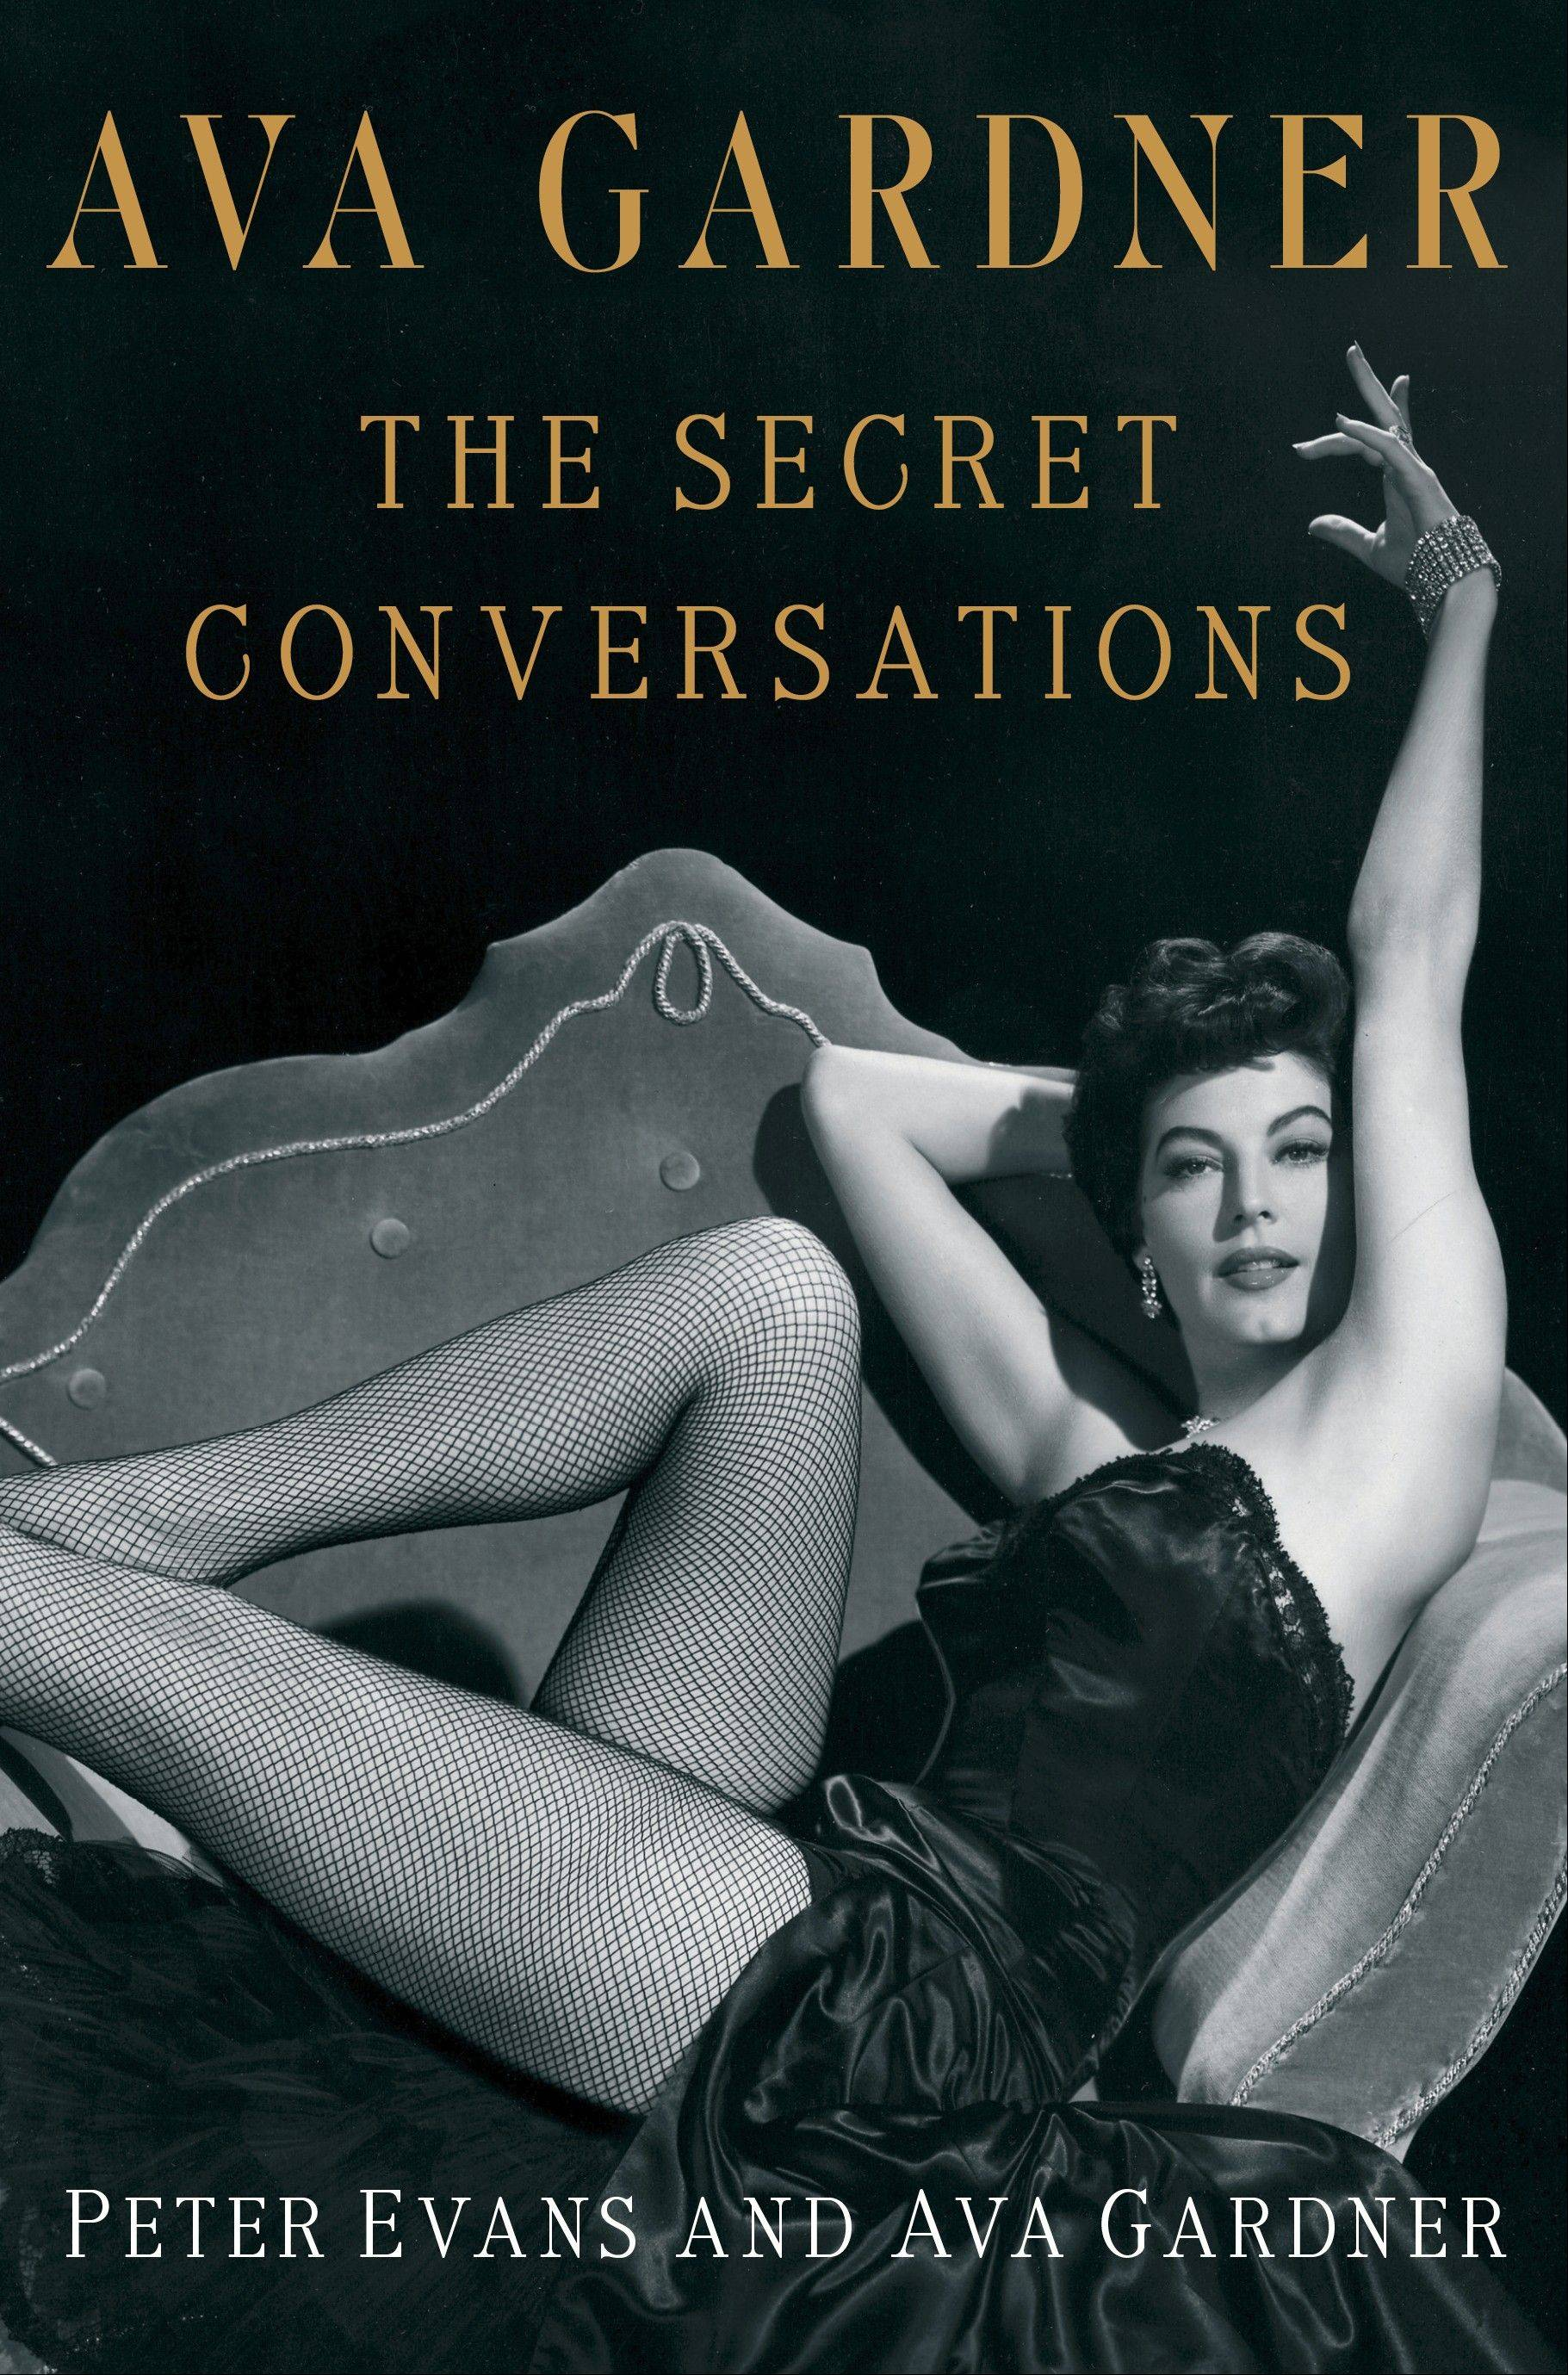 """Ava Gardner: The Secret Conversations"" by Peter Evans and Ava Gardner"